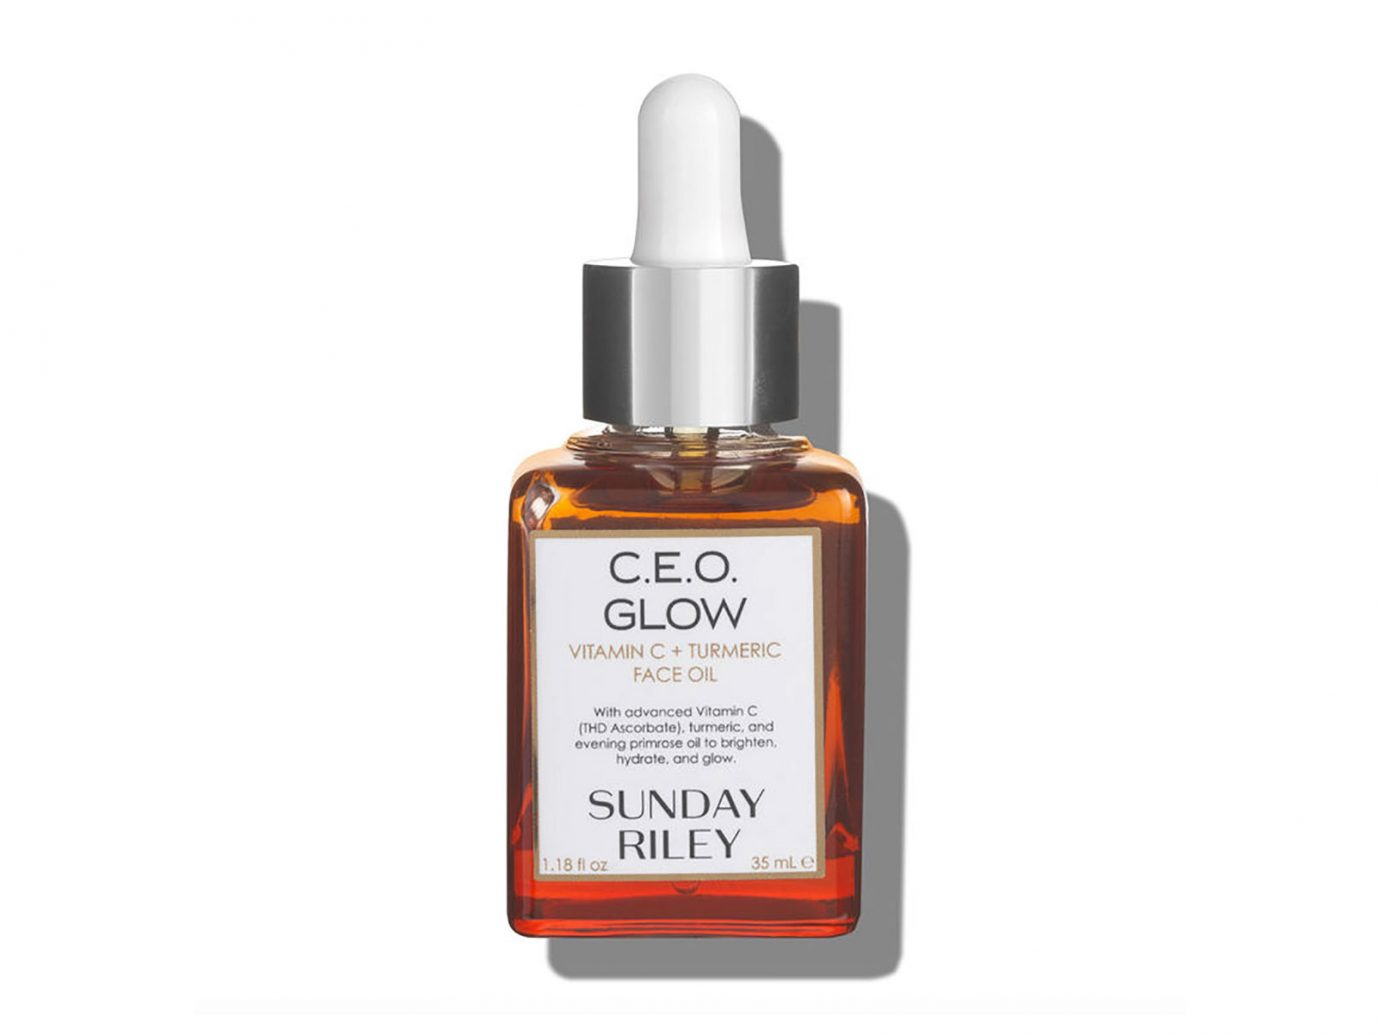 SUNDAY RILEY C.E.O Glow Vitamin C + Turmeric Face Oil